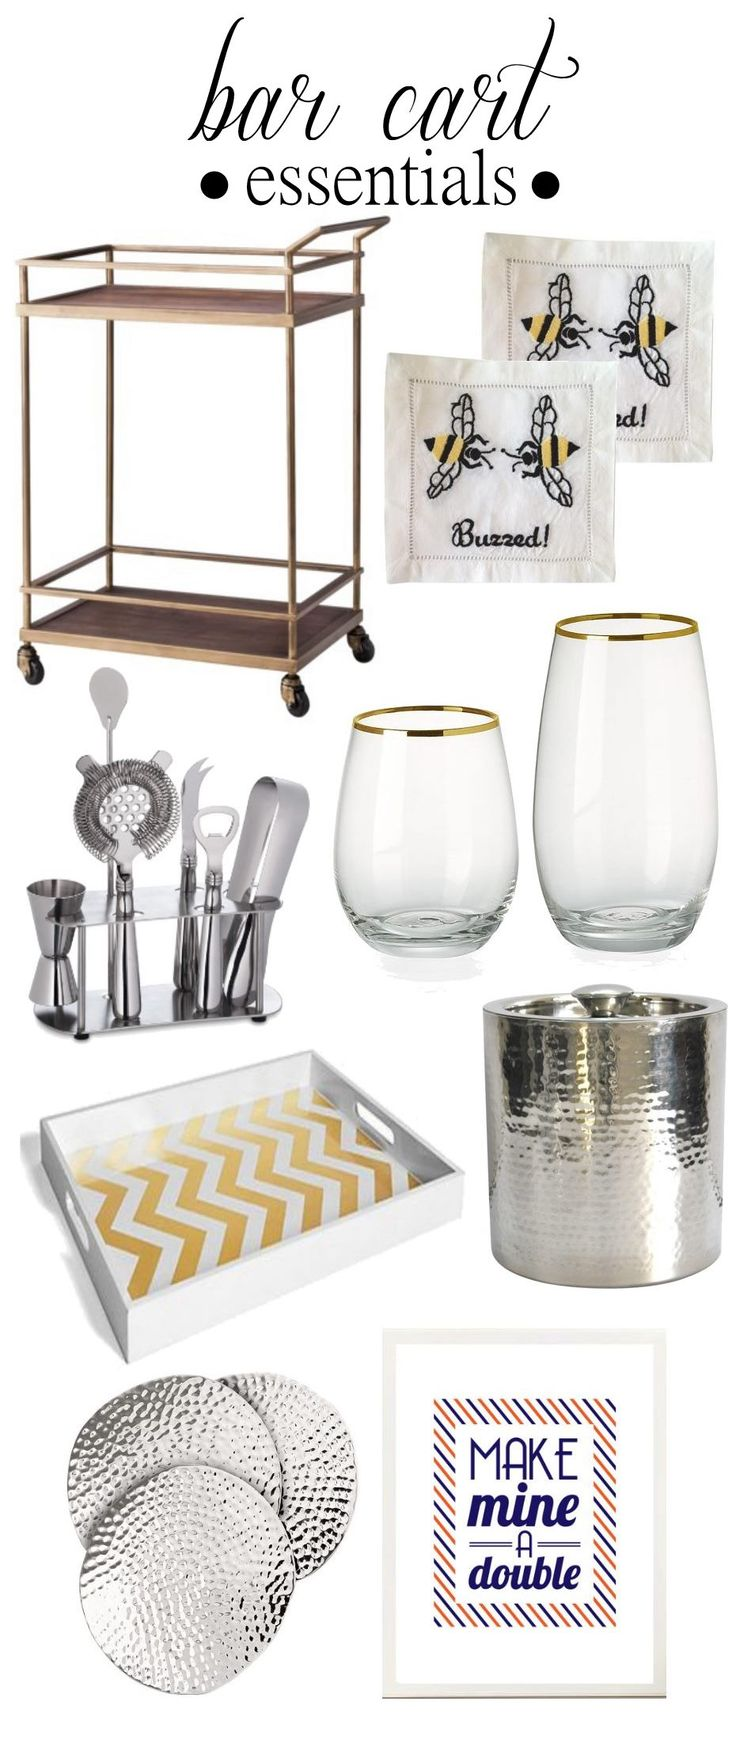 Great list of #bar cart essentials Bar cart, coasters, art, ice bucket, glasses, tools, and a pretty tray :)